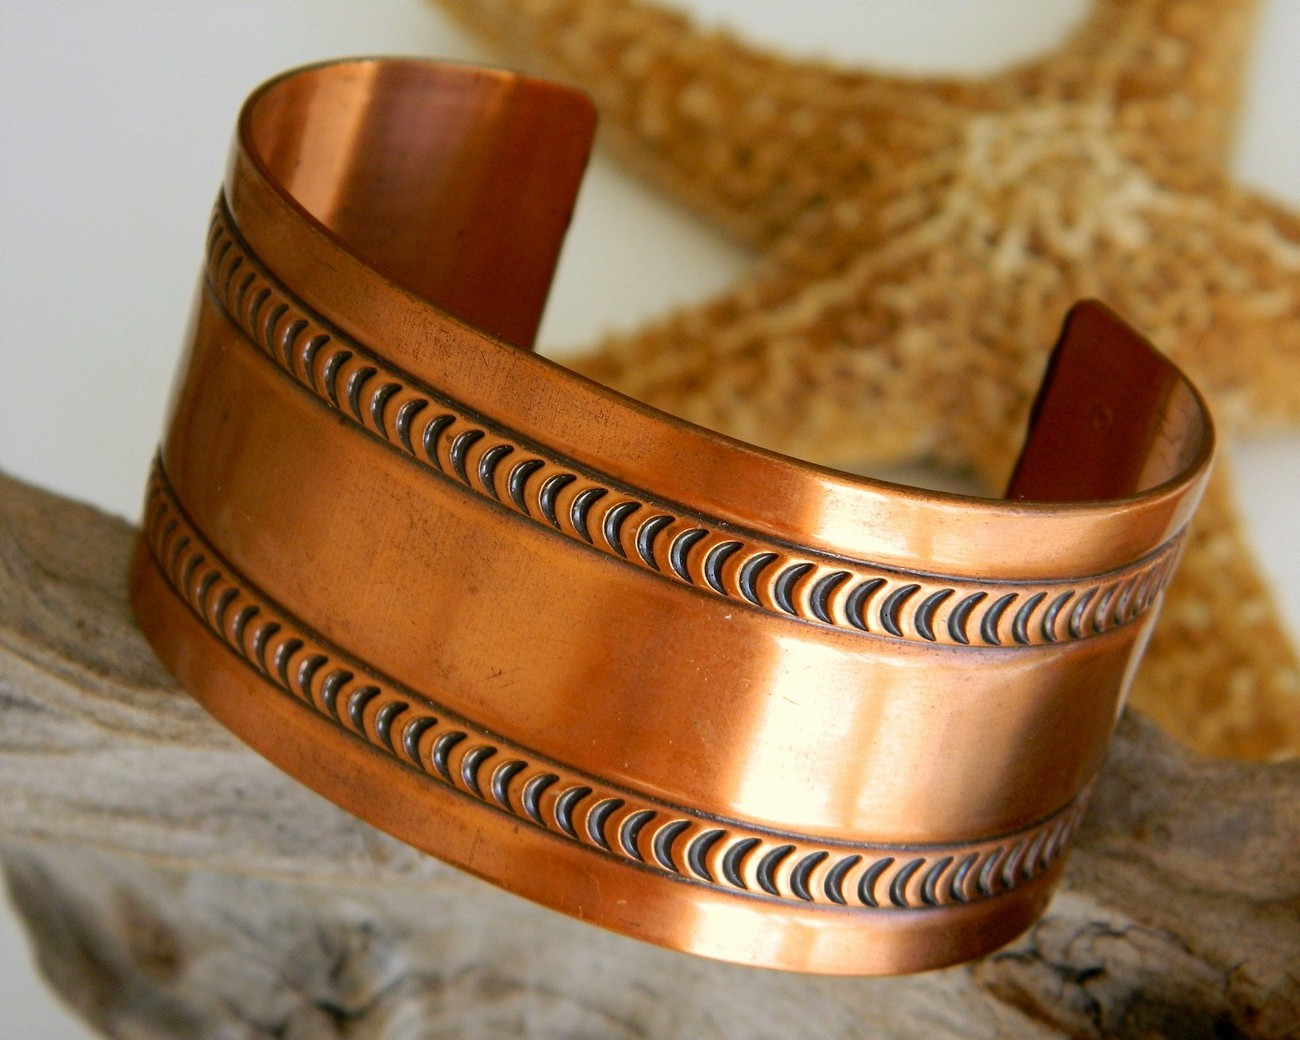 Vintage wide solid copper cuff bracelet embossed crescent moon design